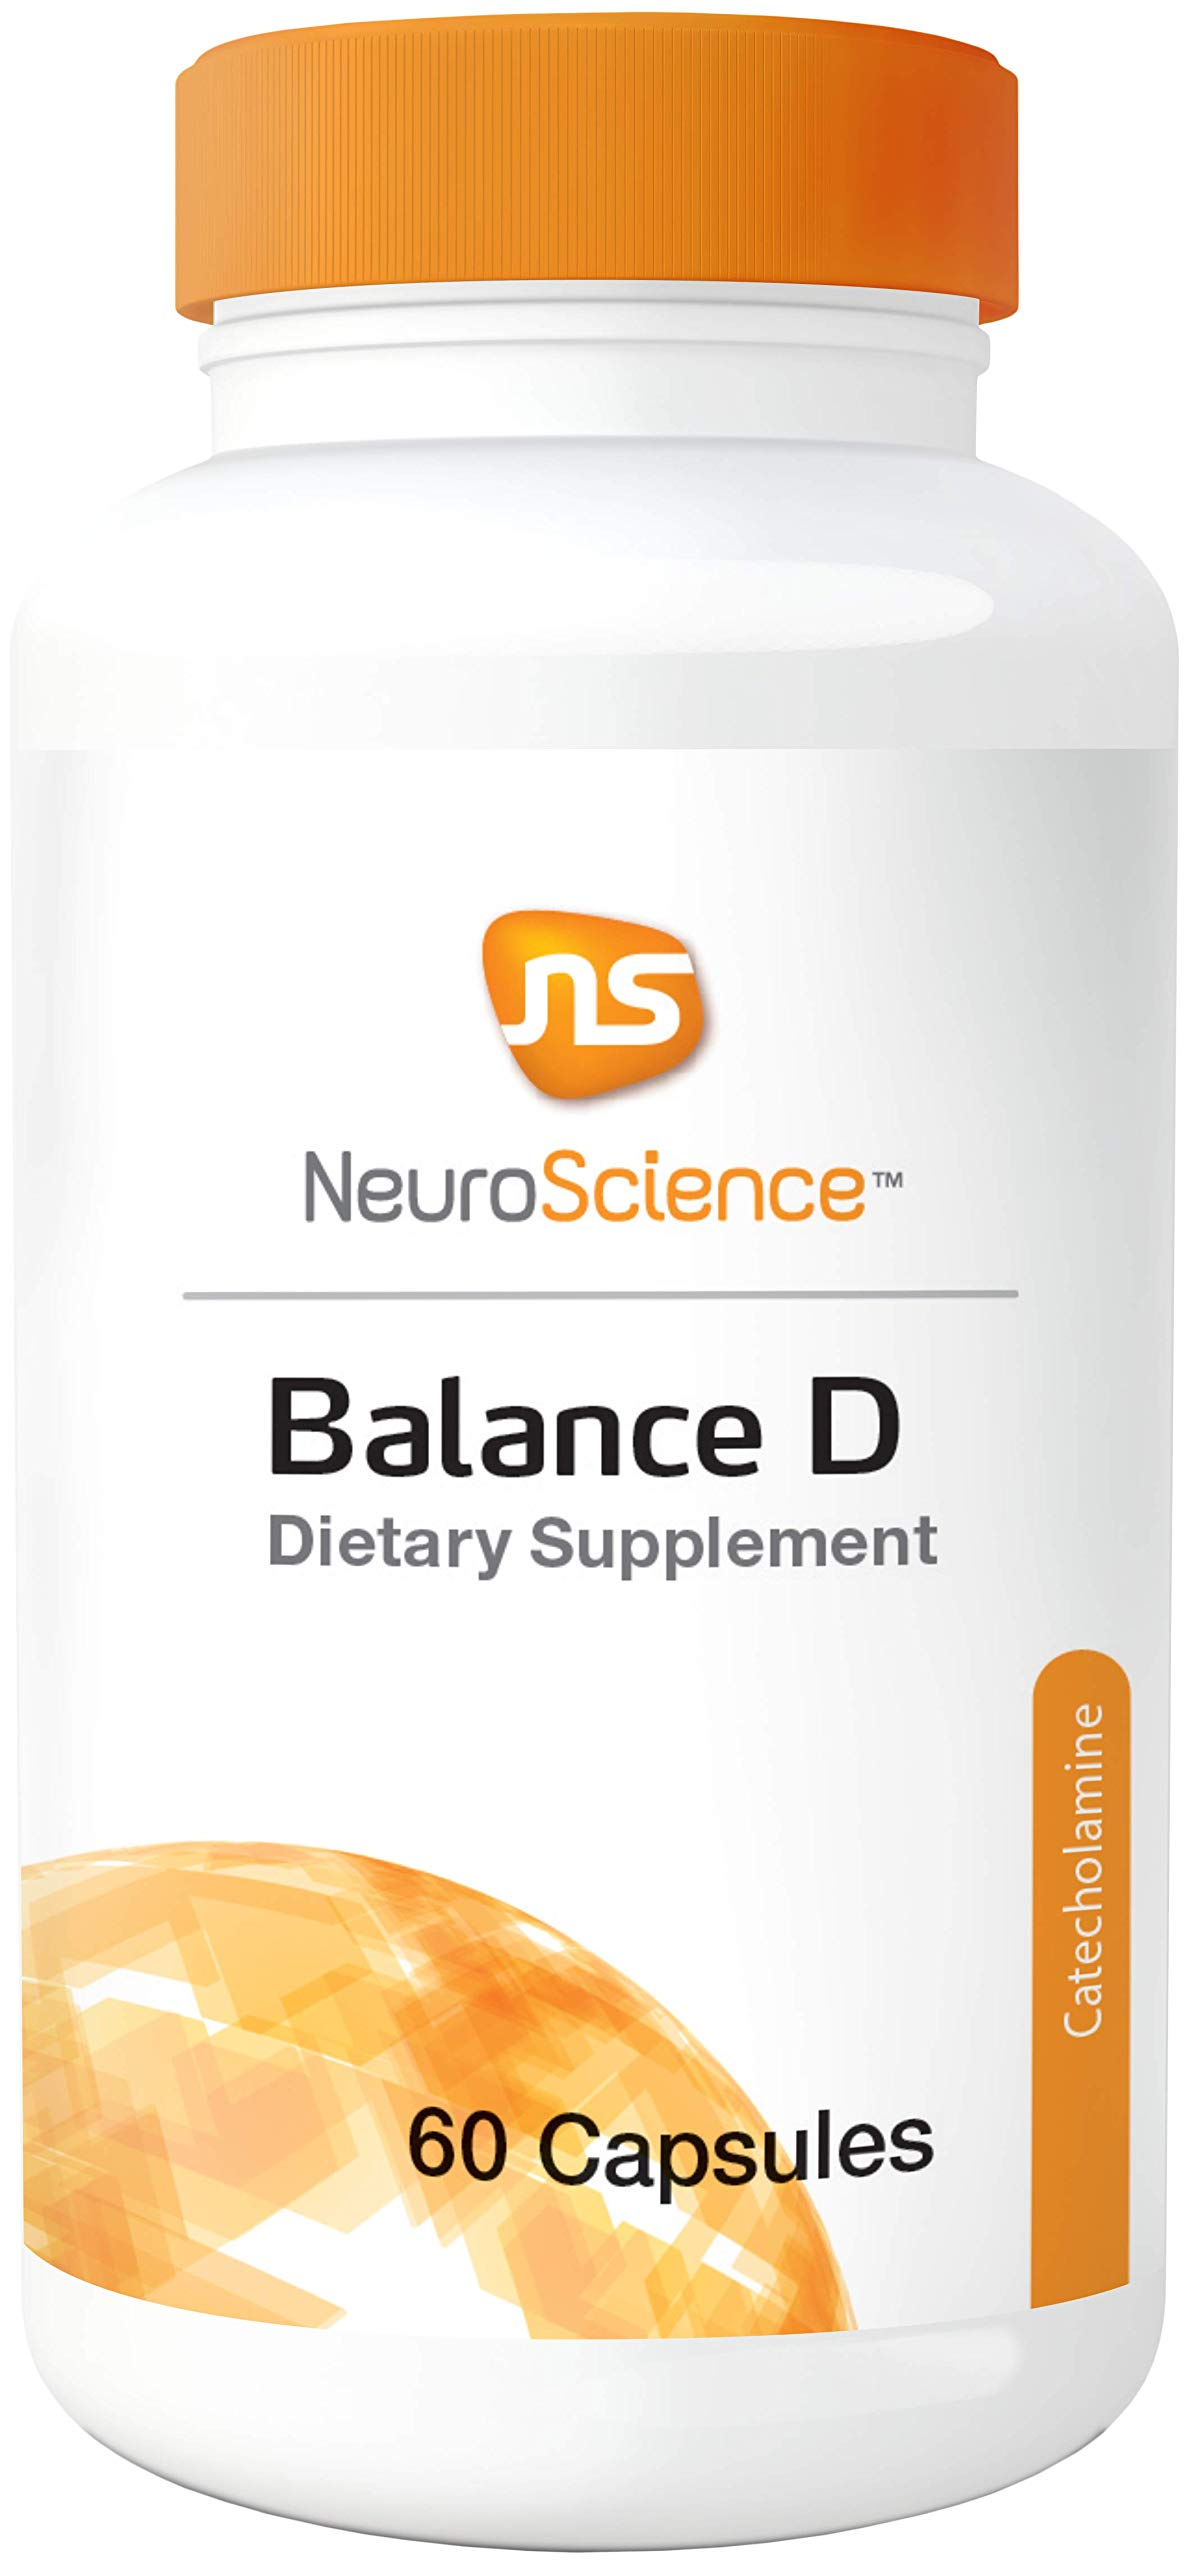 NeuroScience Balance D - Mood Support with Ingredients Important for Dopamine Synthesis (60 Capsules) by NeuroScience